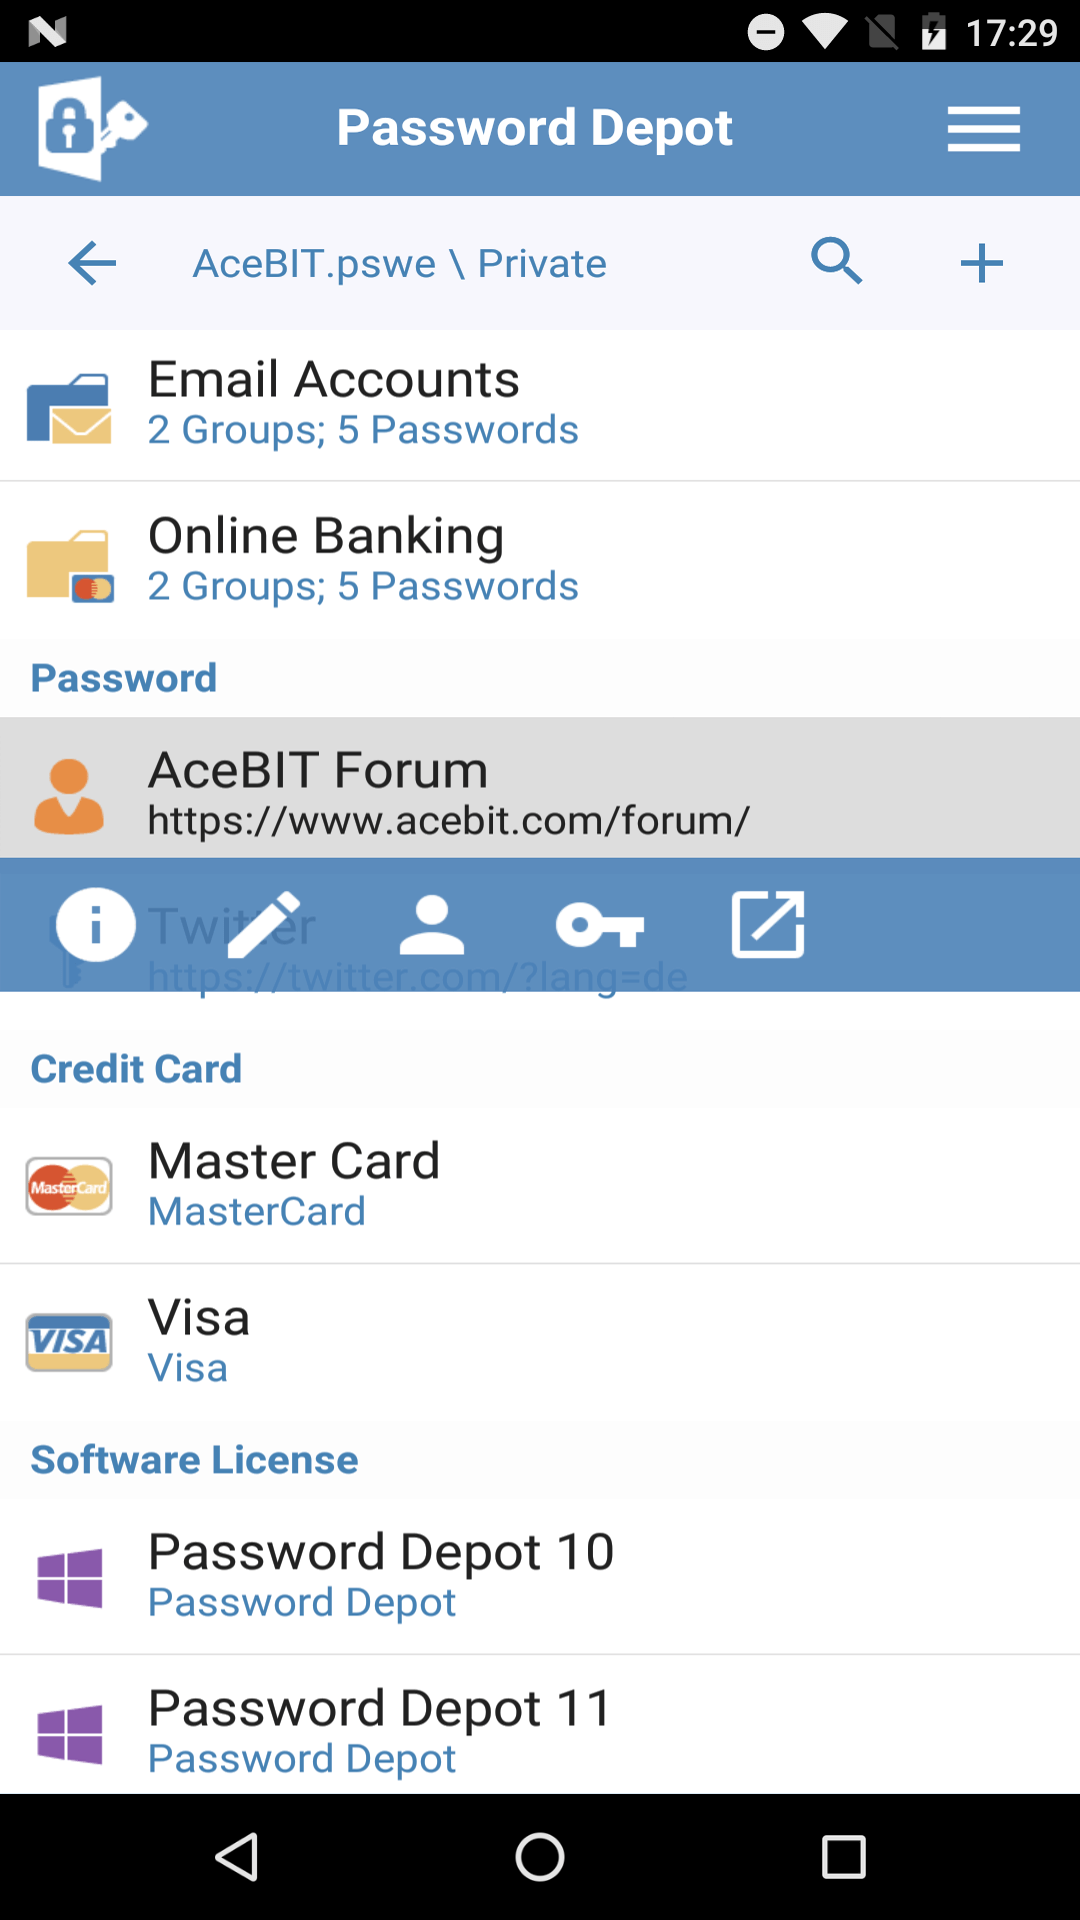 acebit password depot forum